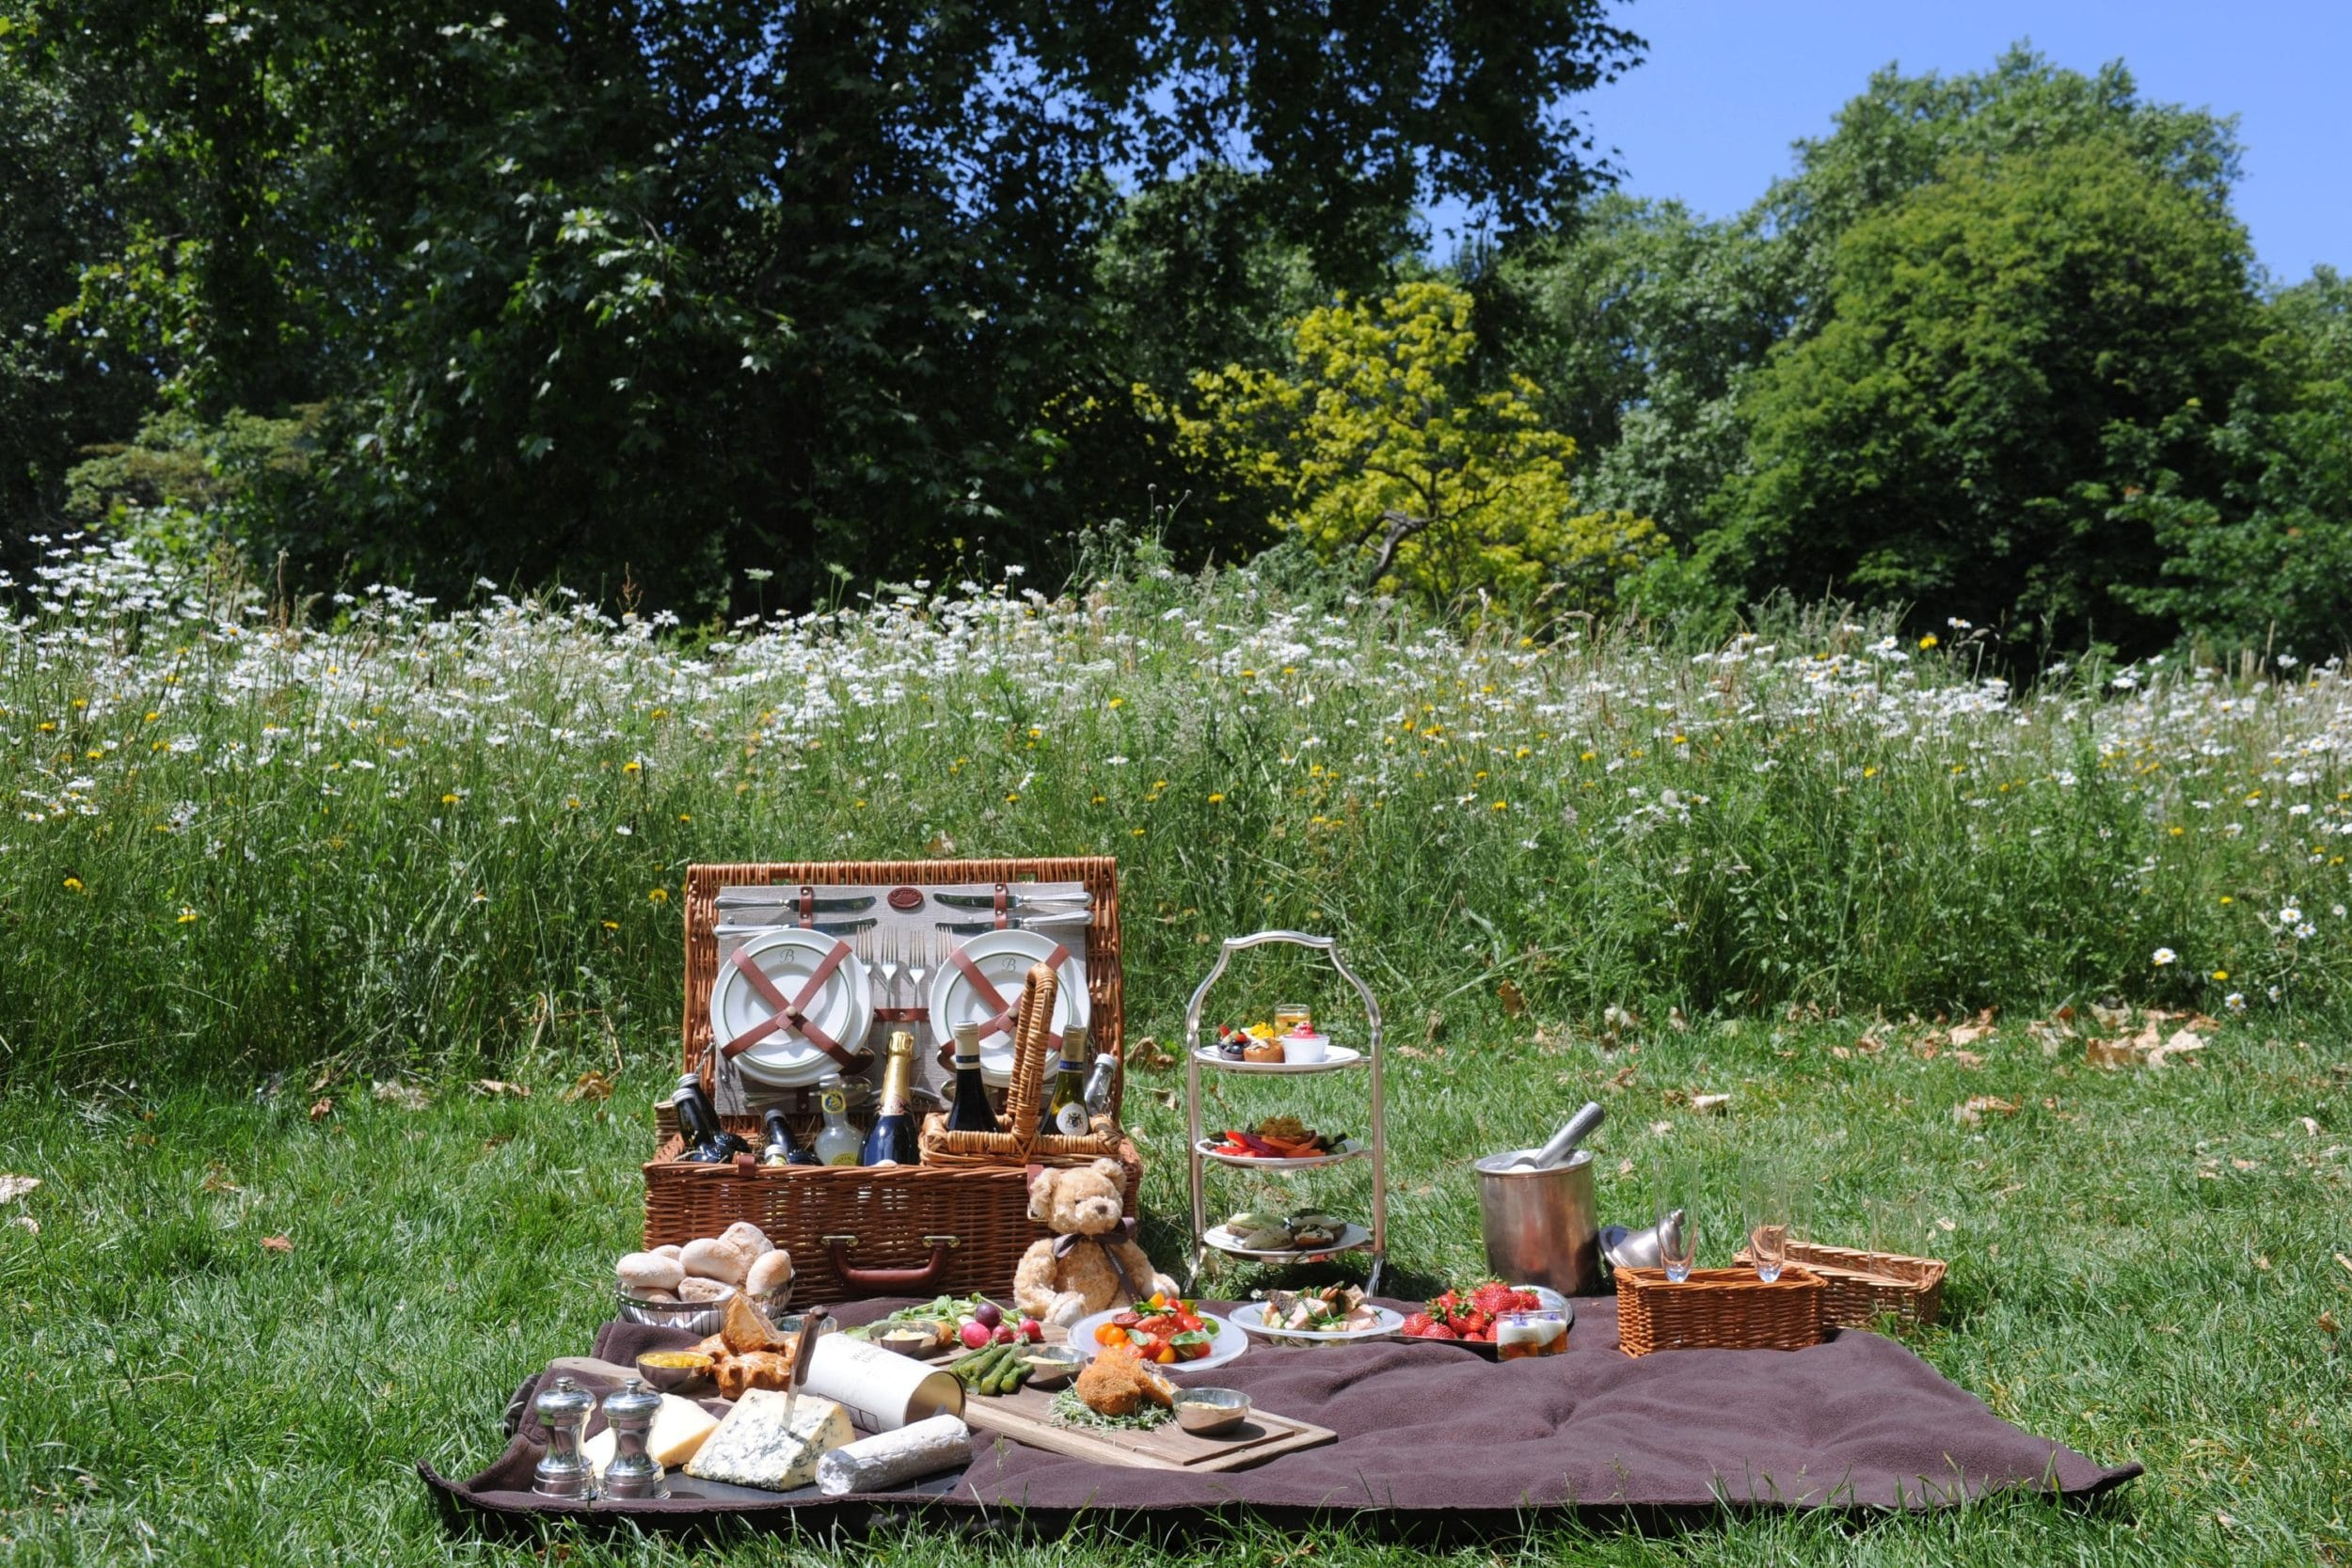 Brown's Hotel in London will pack a picnic for guests to take to Hyde Park.